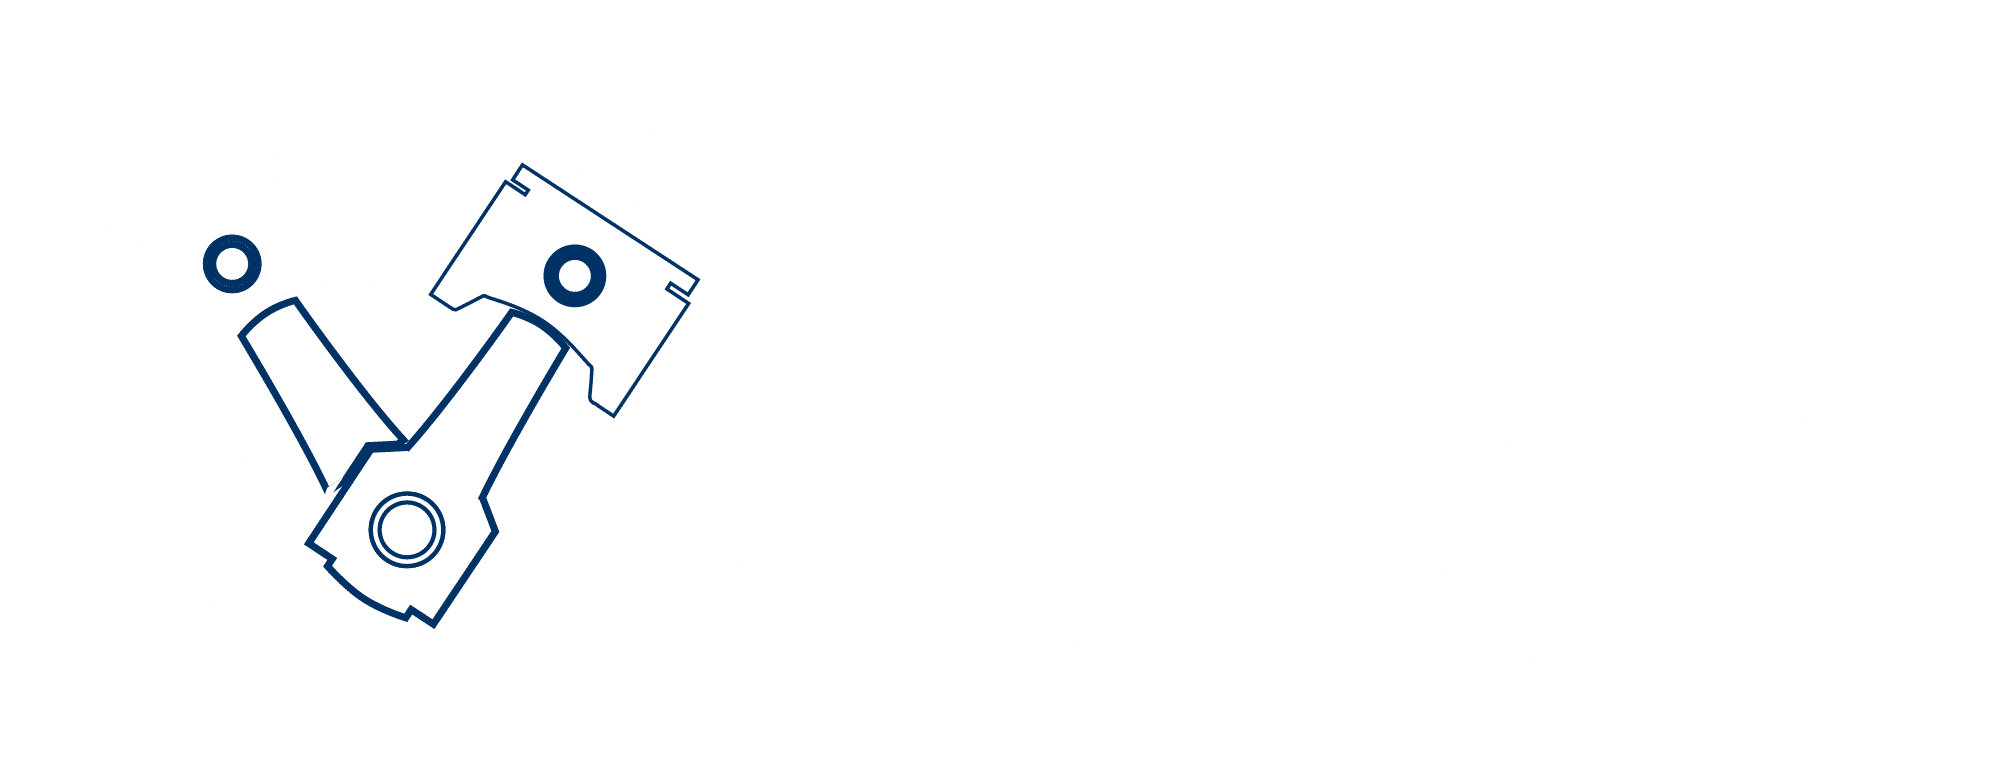 Wigan Engine Services